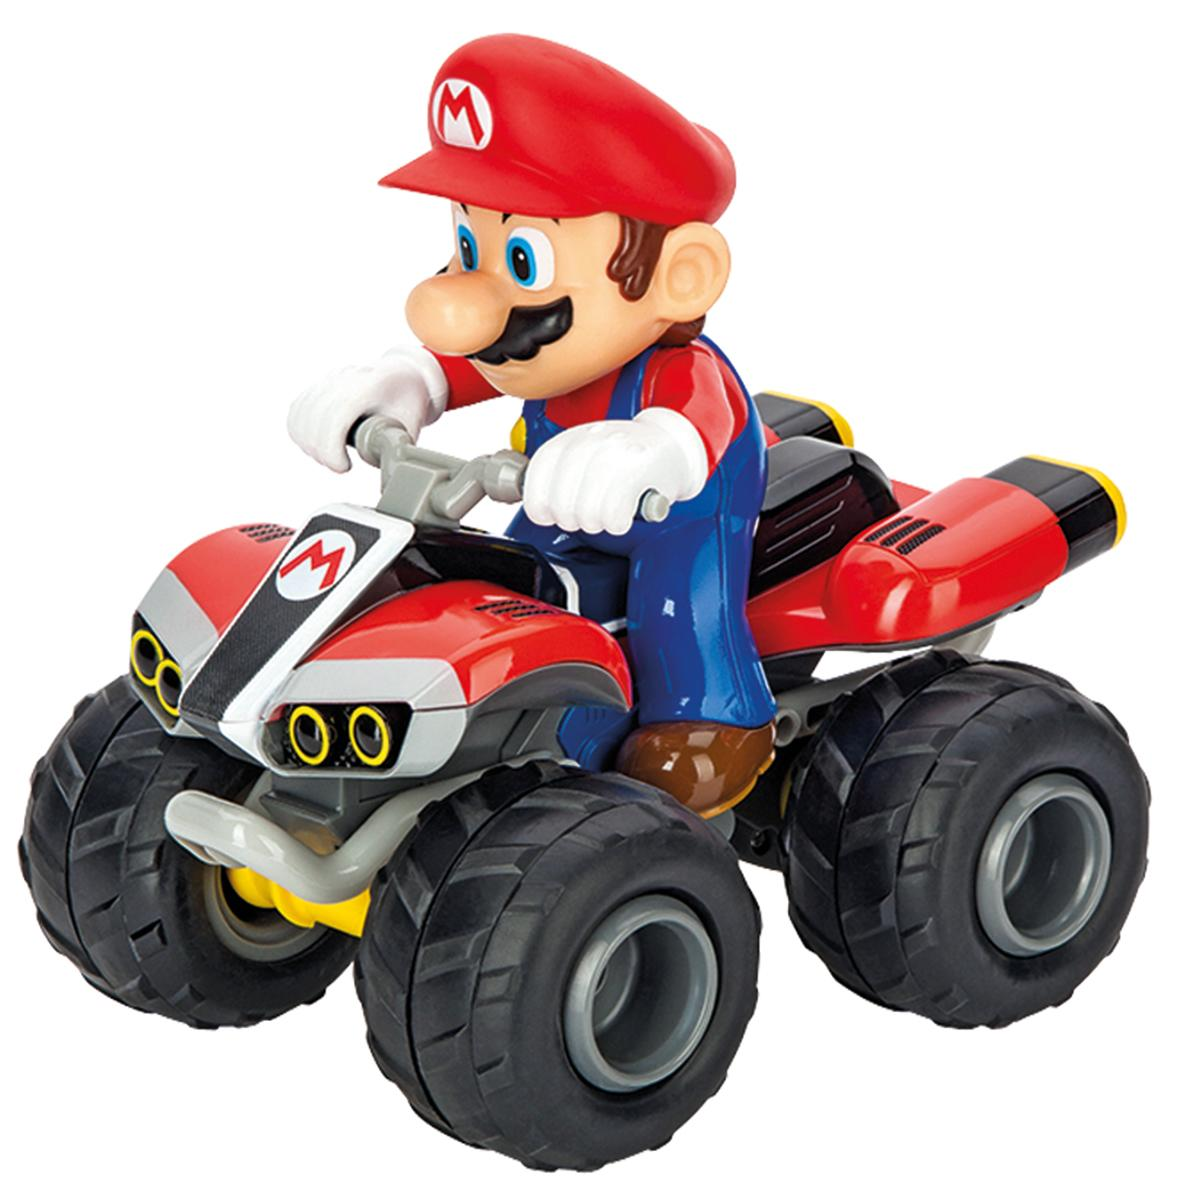 carrera rc auto mario kart 8 mario. Black Bedroom Furniture Sets. Home Design Ideas